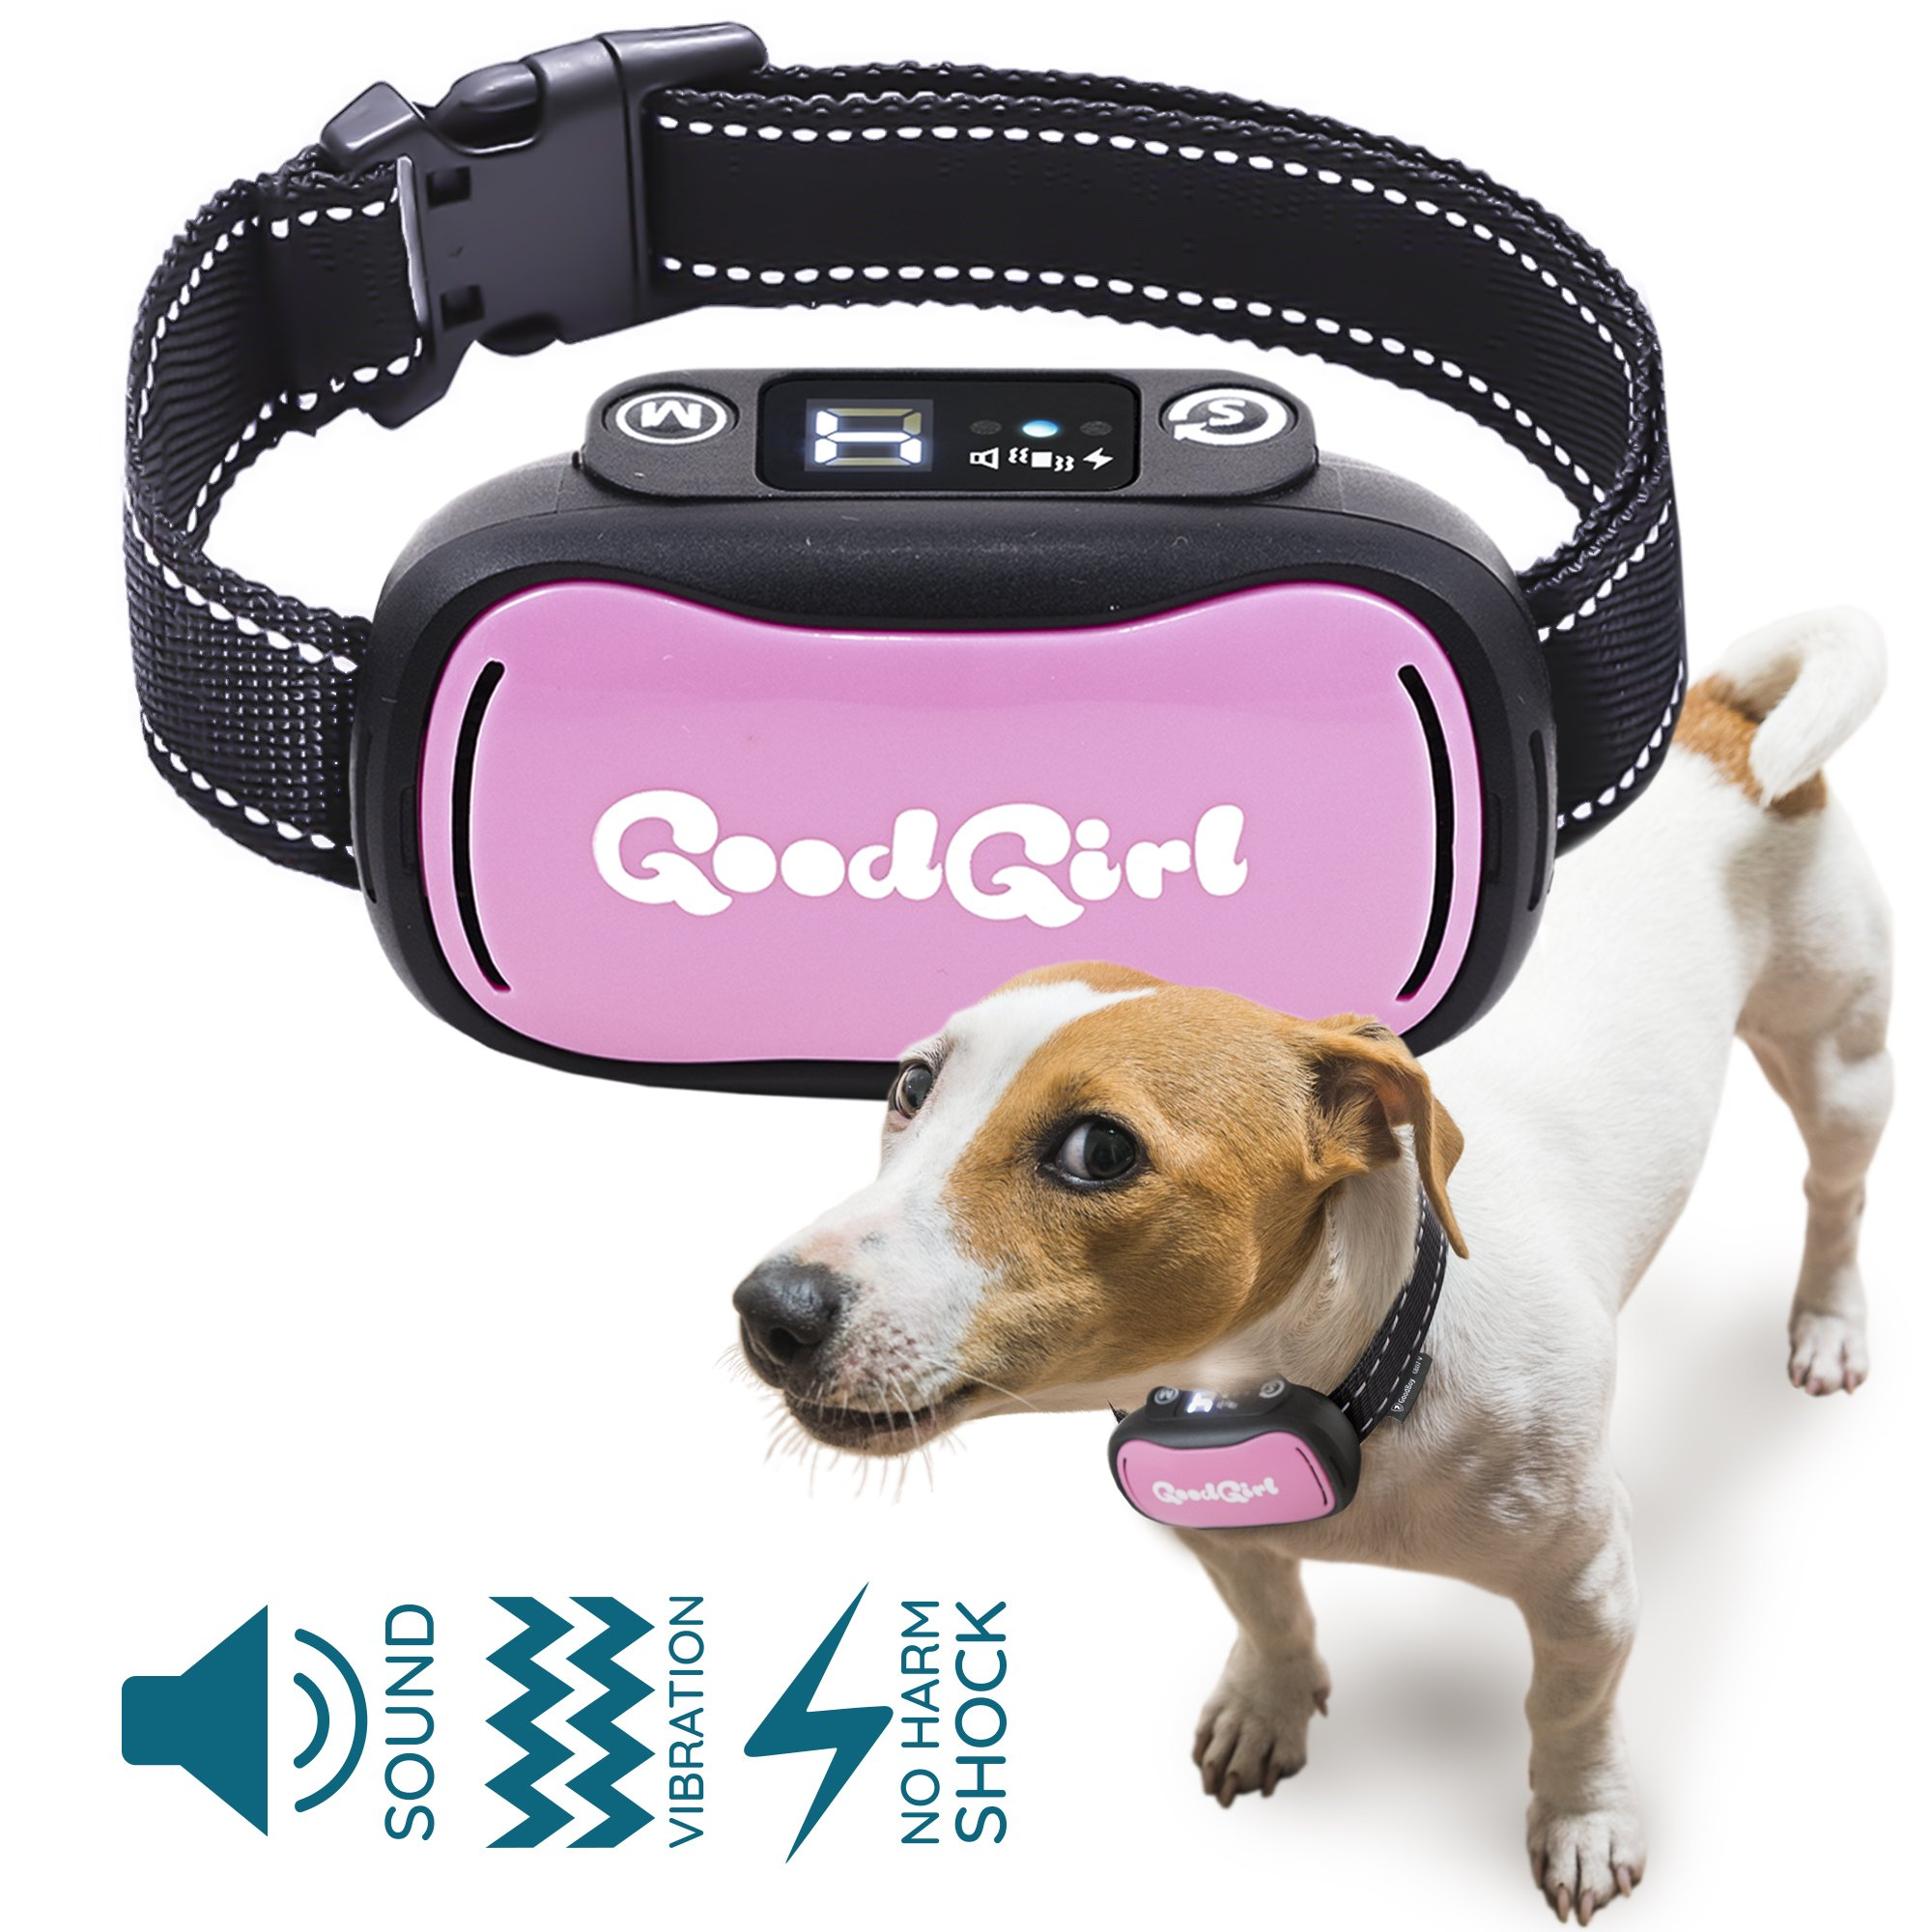 GoodBoy Vibrating Shock Anti-Bark Training Collar With Rechargeable Battery – Small, Safe, Waterproof Design Controls Excessive Barking Humanely – Great For Small And Large Breeds (9+ lbs)